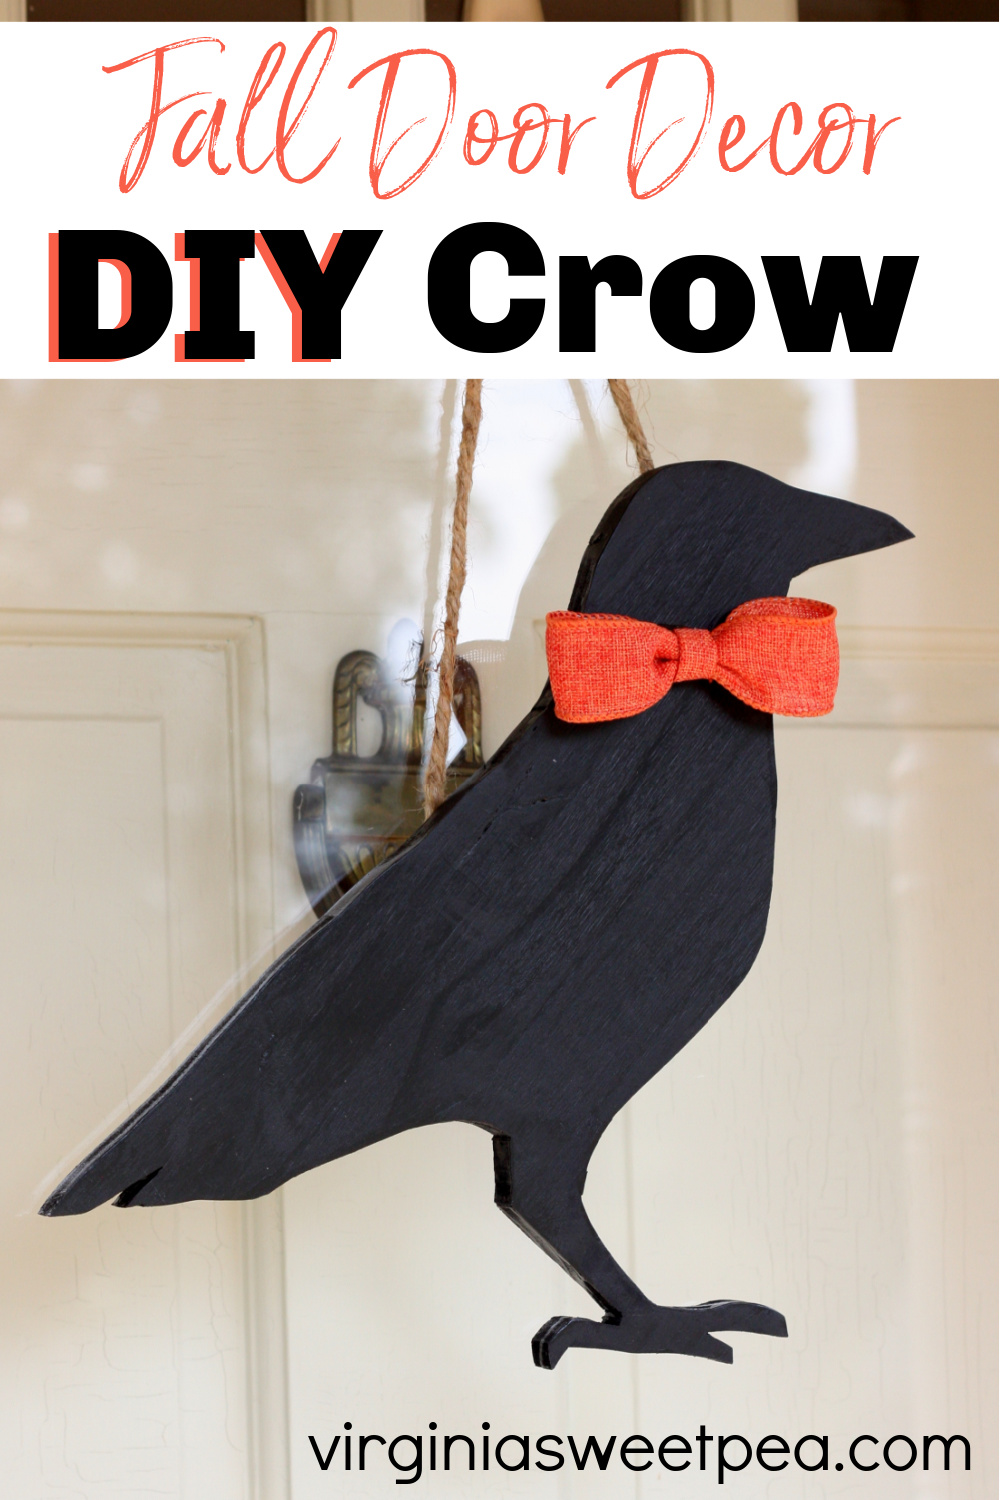 DIY Crow for Fall - Learn how to make a crow to hang on a door or wall for fall decorating.  #falldecor #crow #fallcraft #falldecoration via @spaula